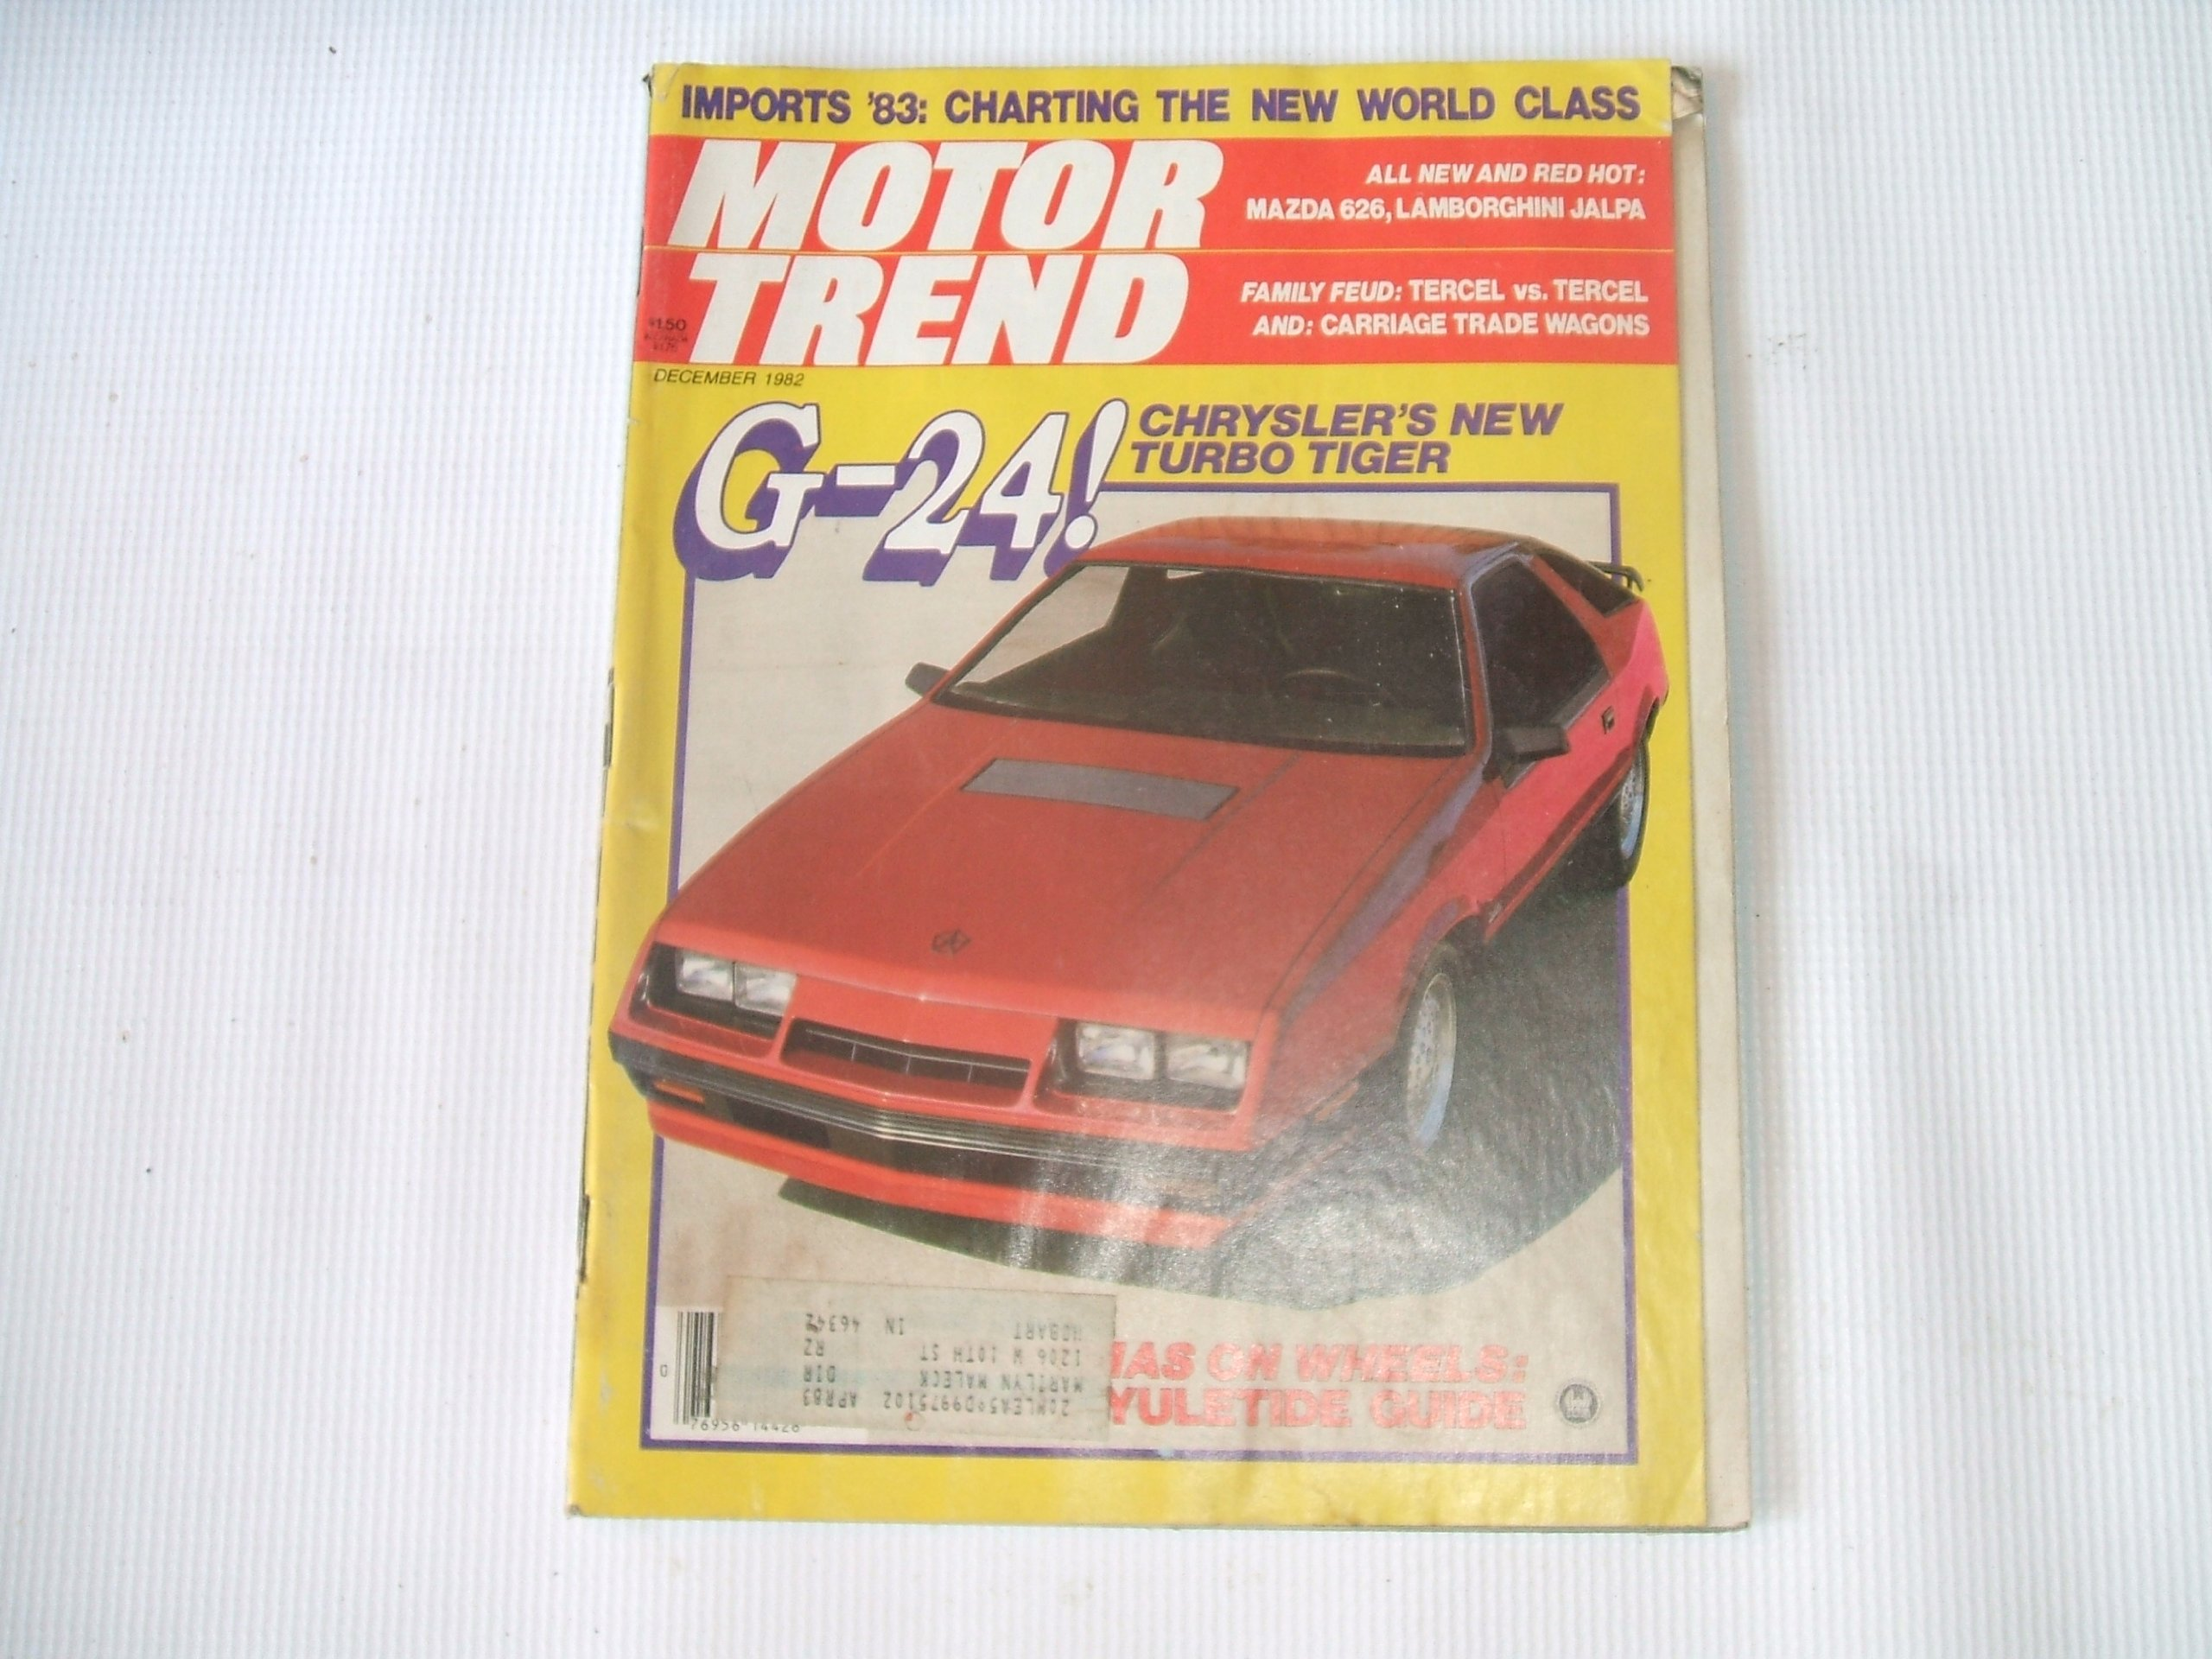 Motor Trend December 1982 (G-24 CHRYSLERS NEW TURBO TIGER, VOL 34, NUMBER 12): TONY SWAN: Amazon.com: Books